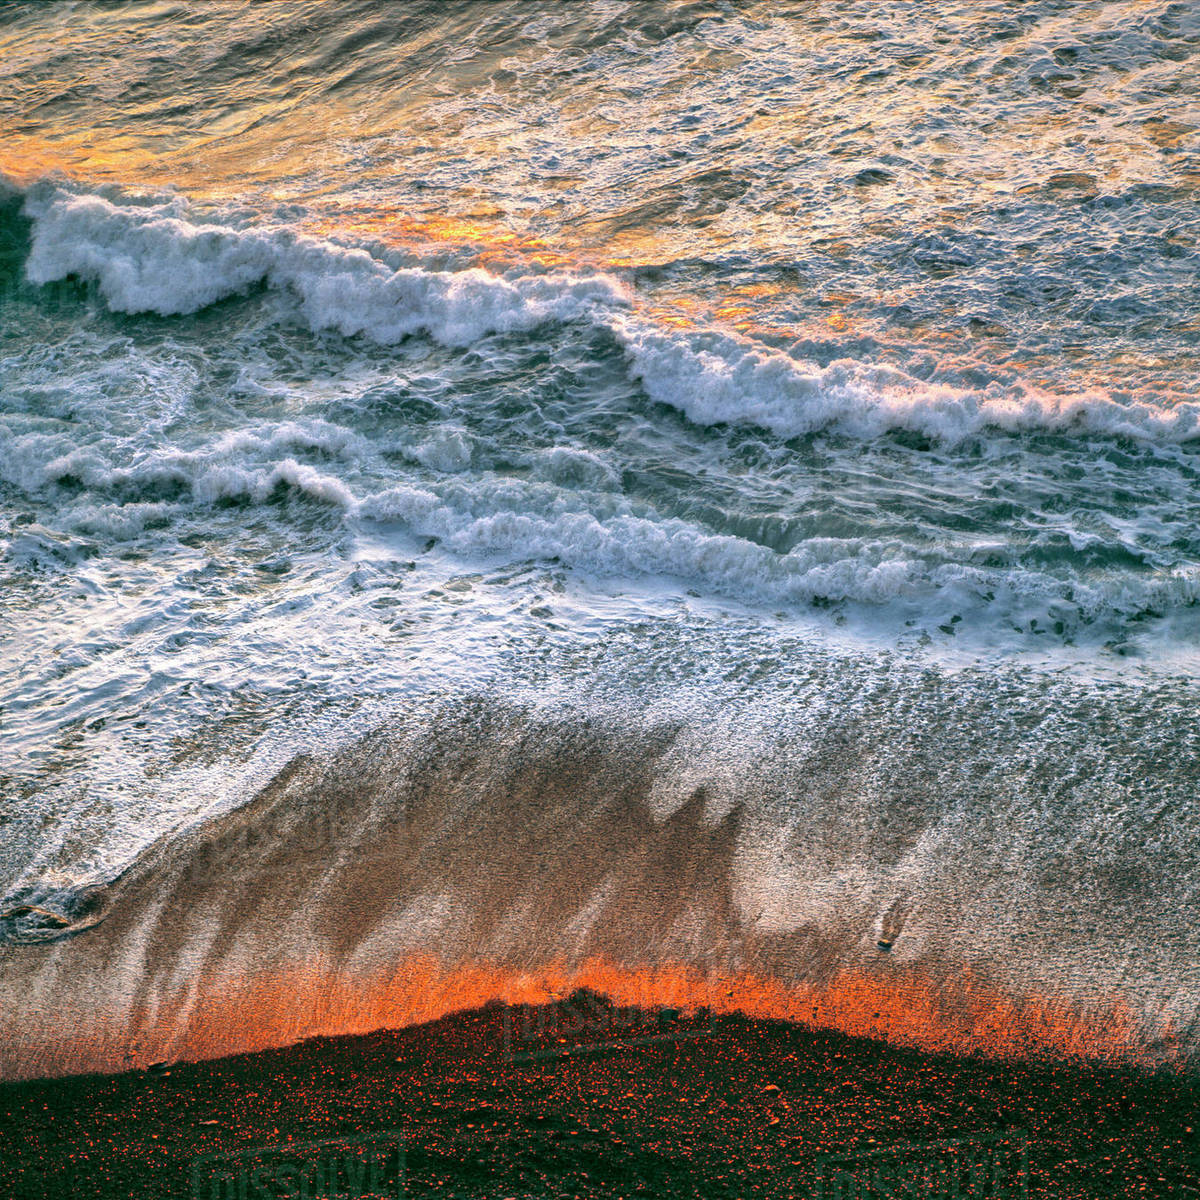 USA, California, Big Sur. Breaking surf catches the late fiery light of sunset at Big Sur on the California coast. Royalty-free stock photo